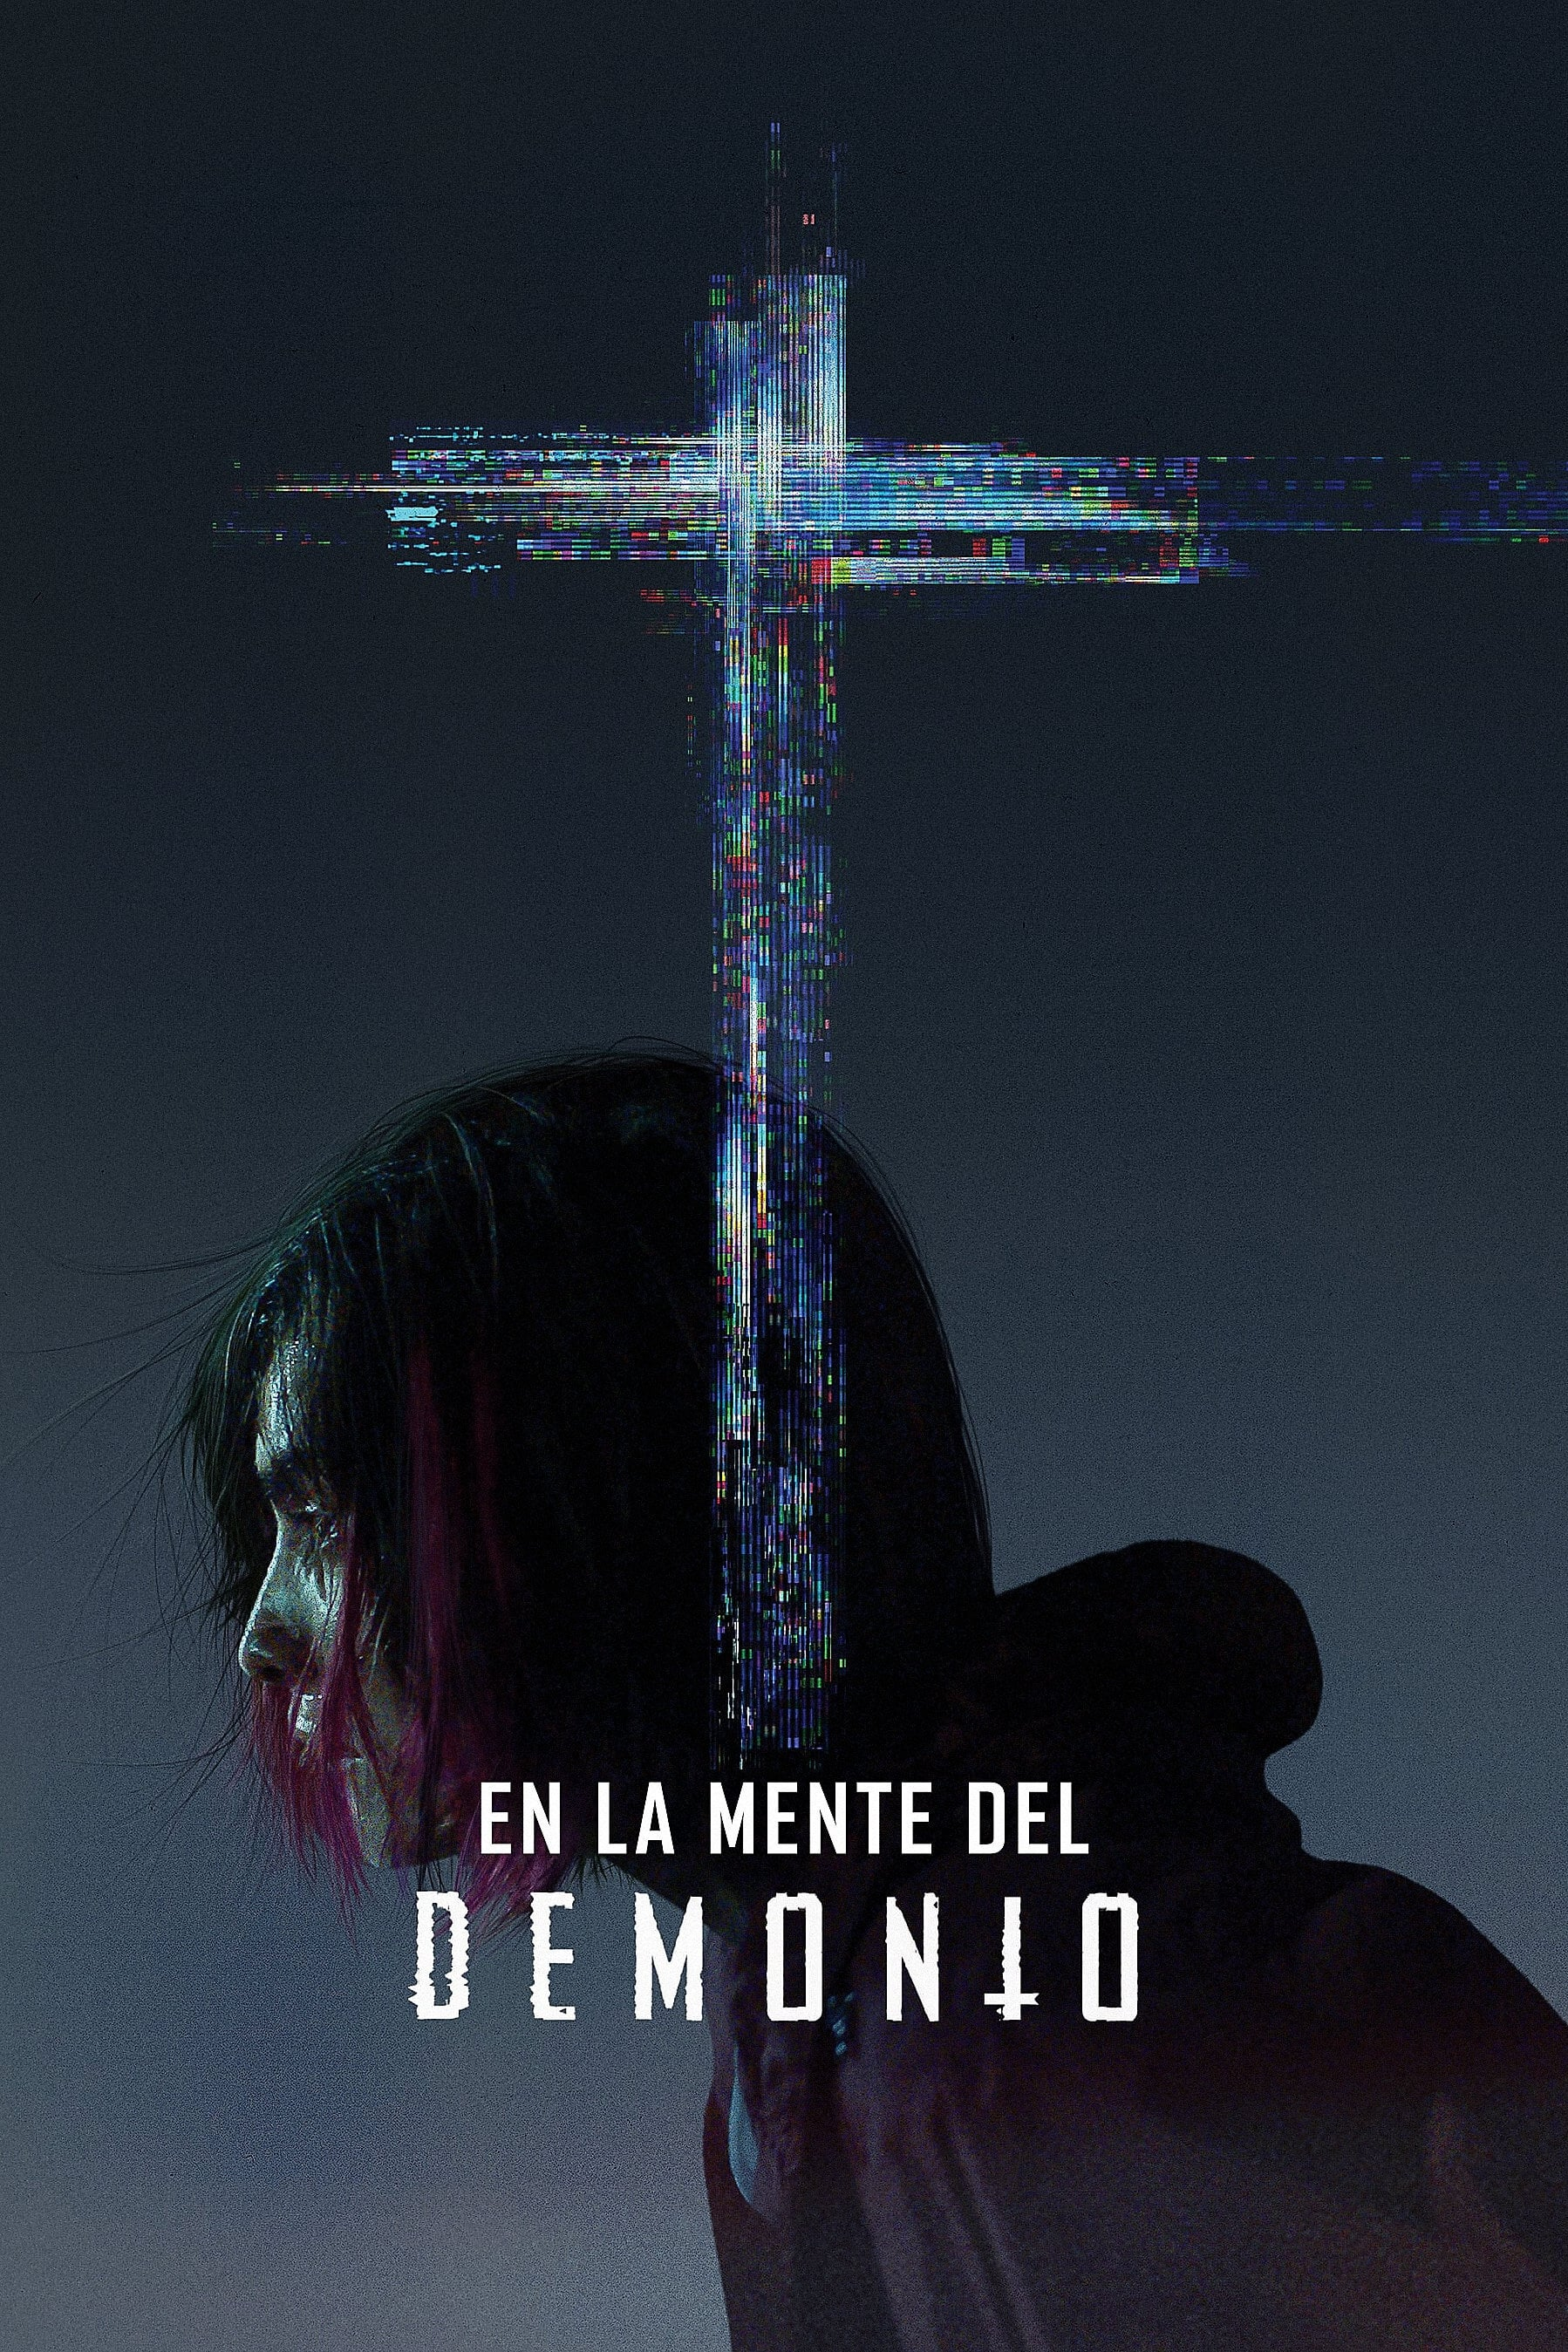 Poster and image movie Demonic